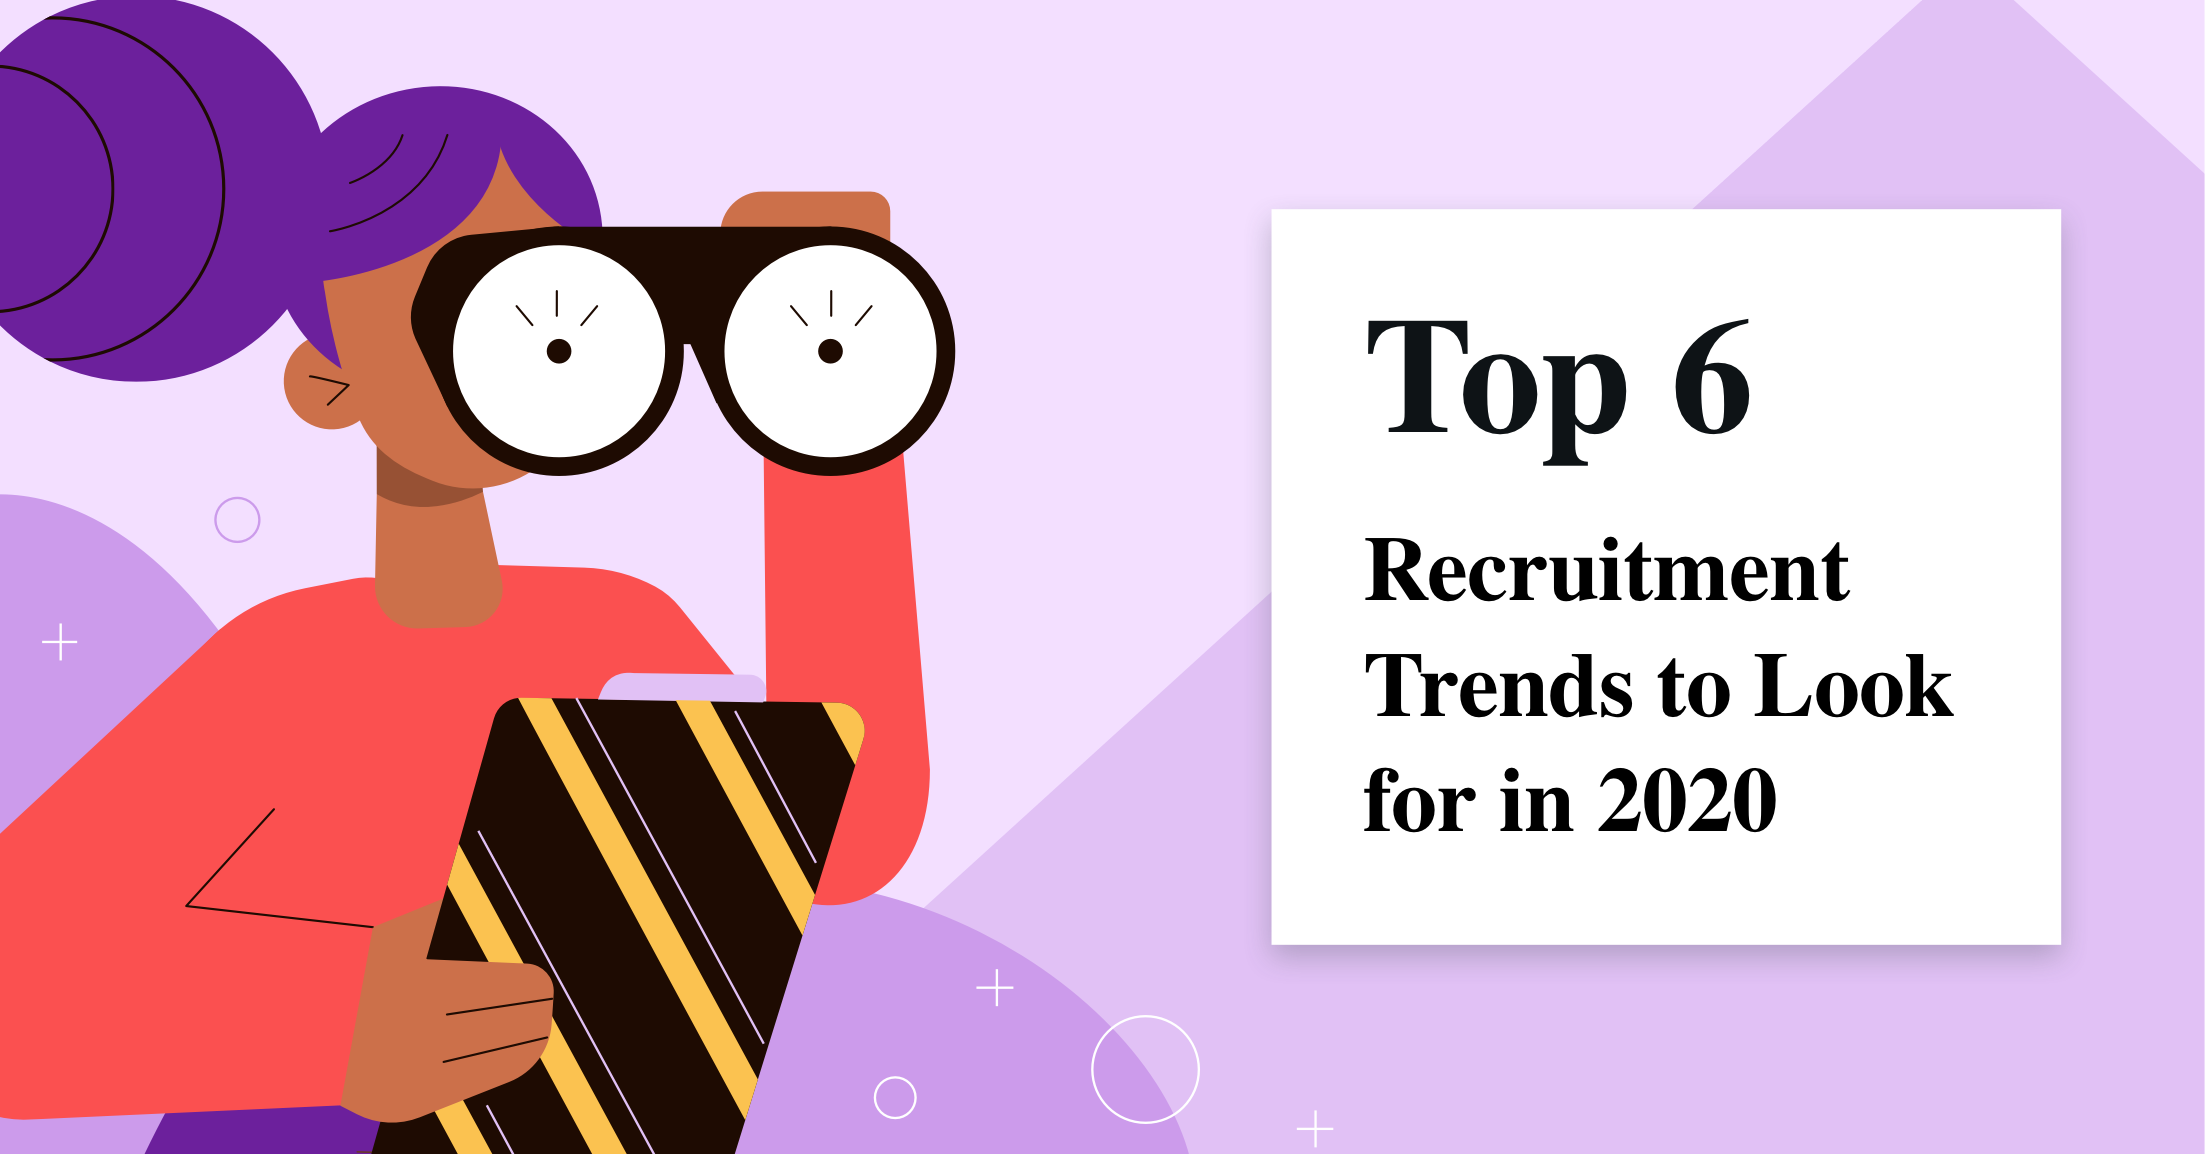 Top 6 Recruitment Trends to Look for in 2020